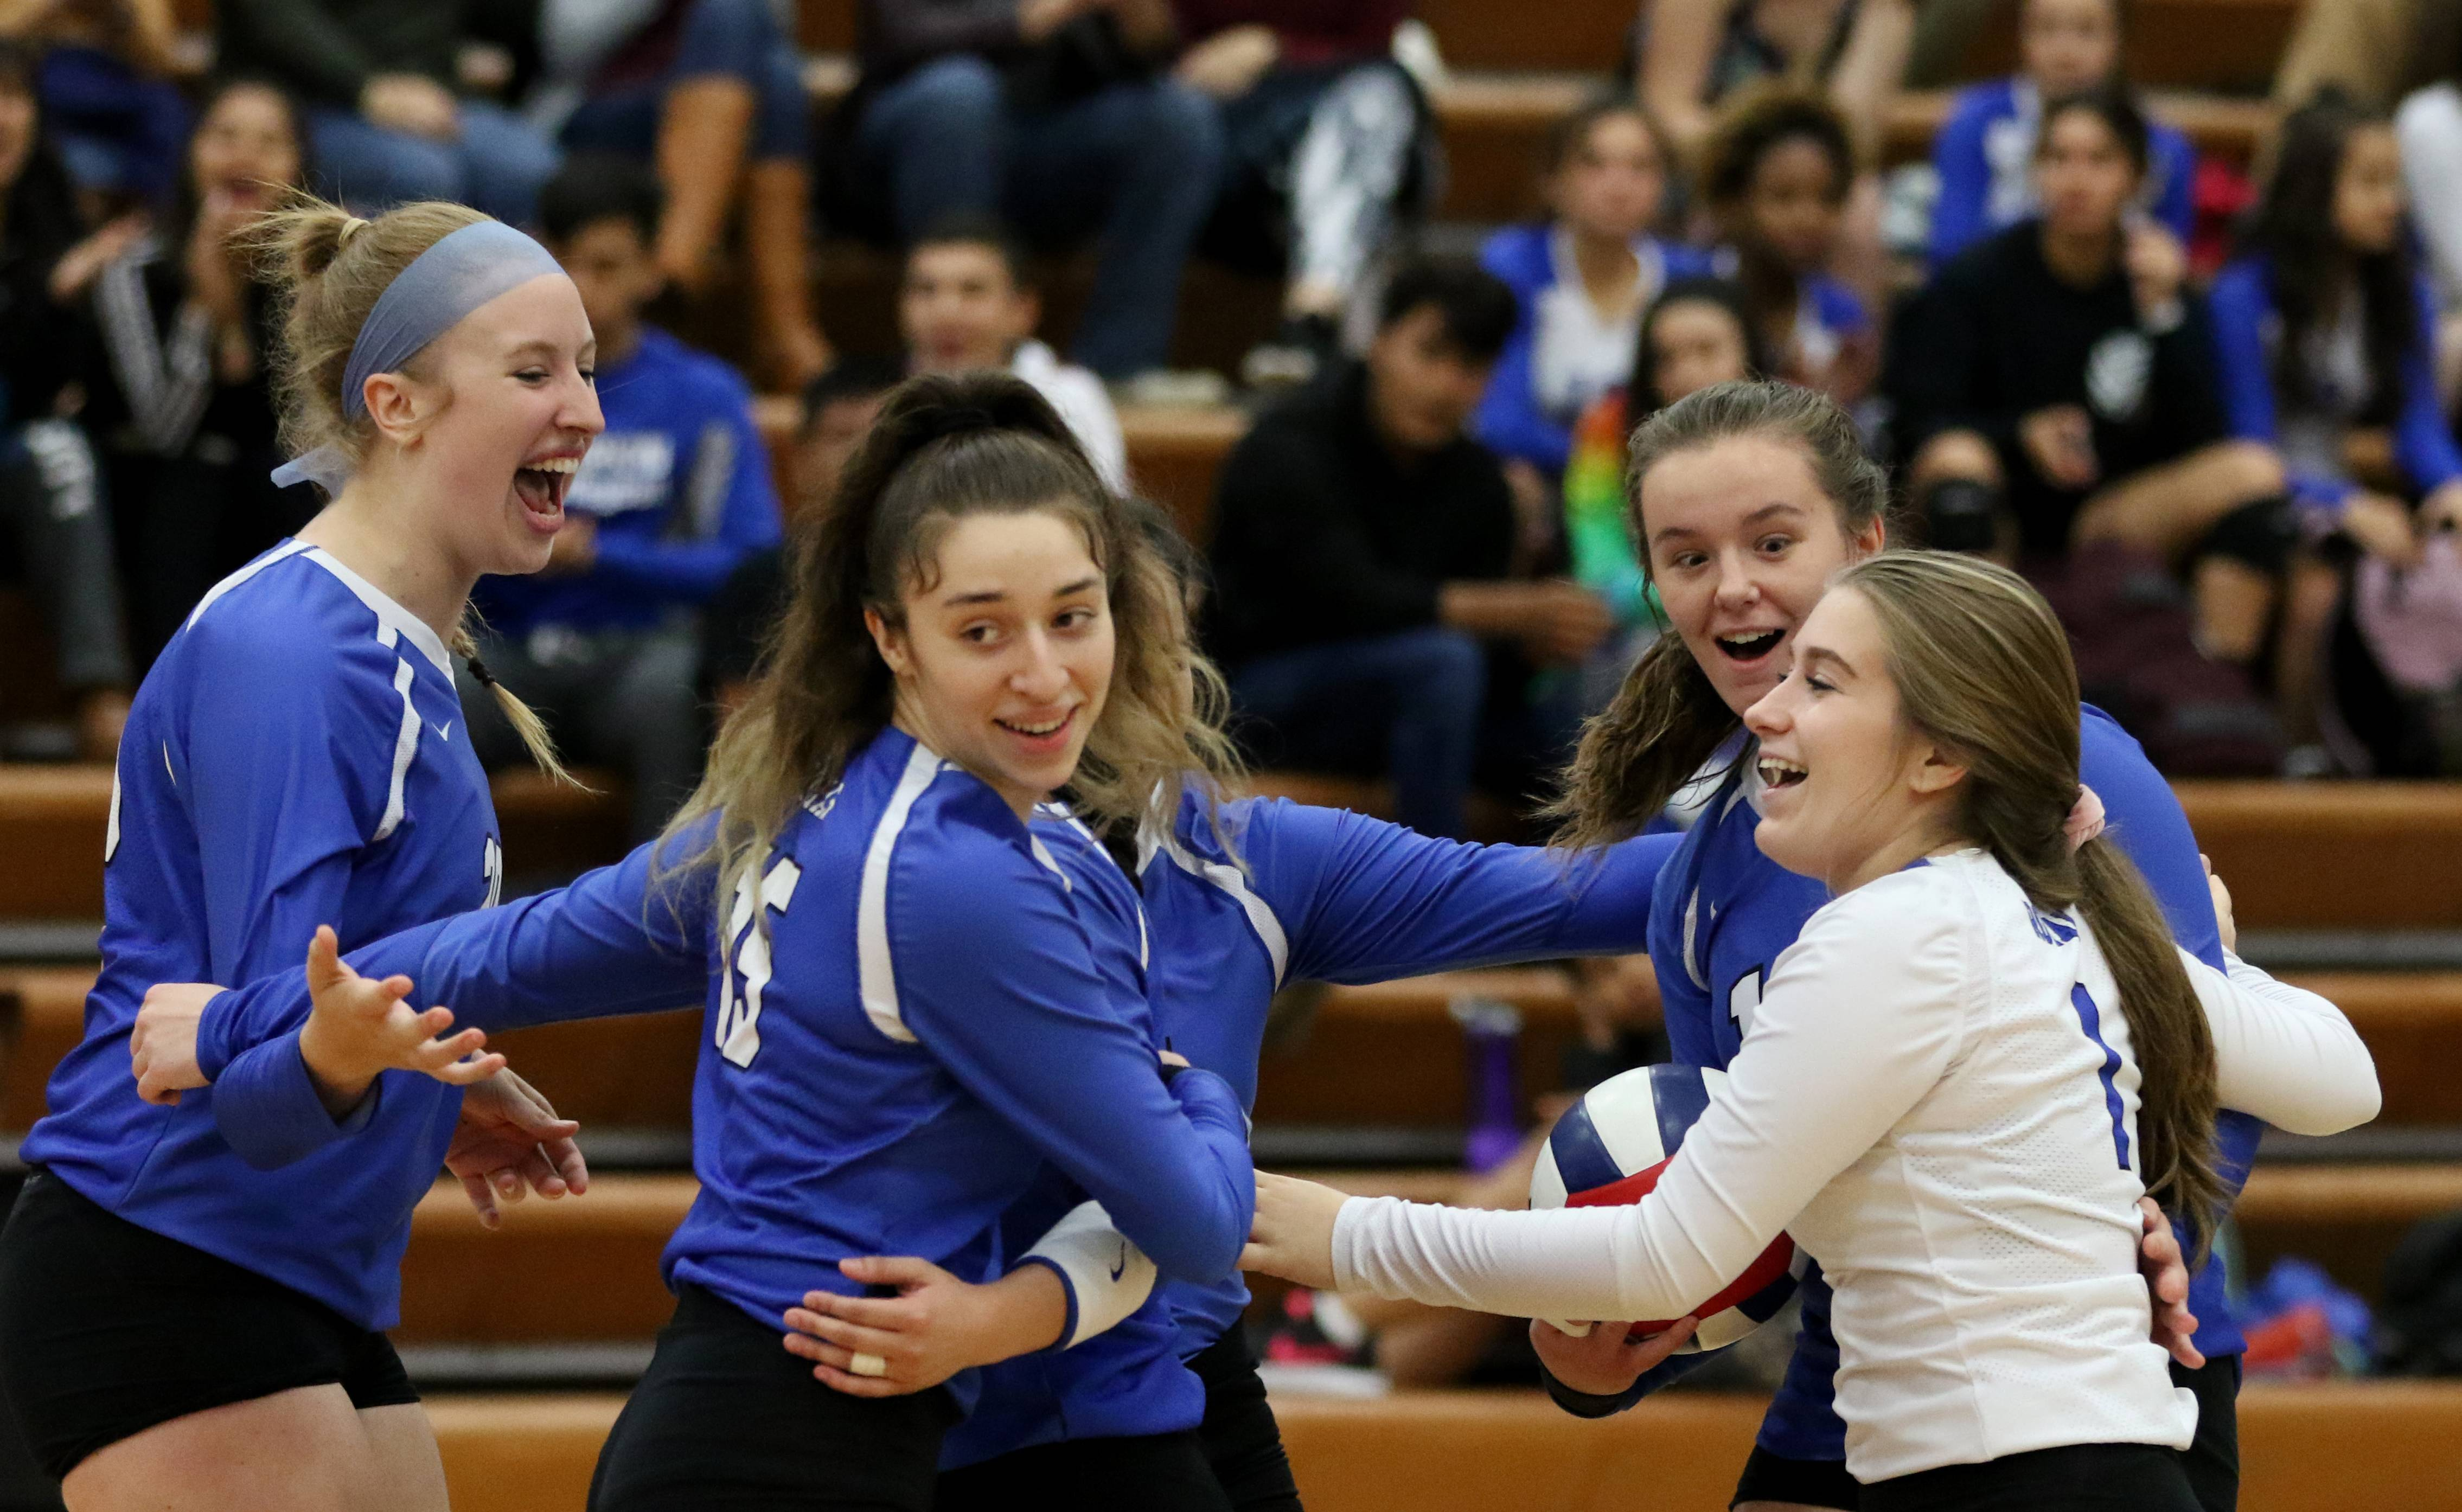 Larkin players get together after a point against Elgin in varsity girls volleyball at Larkin on Wednesday.